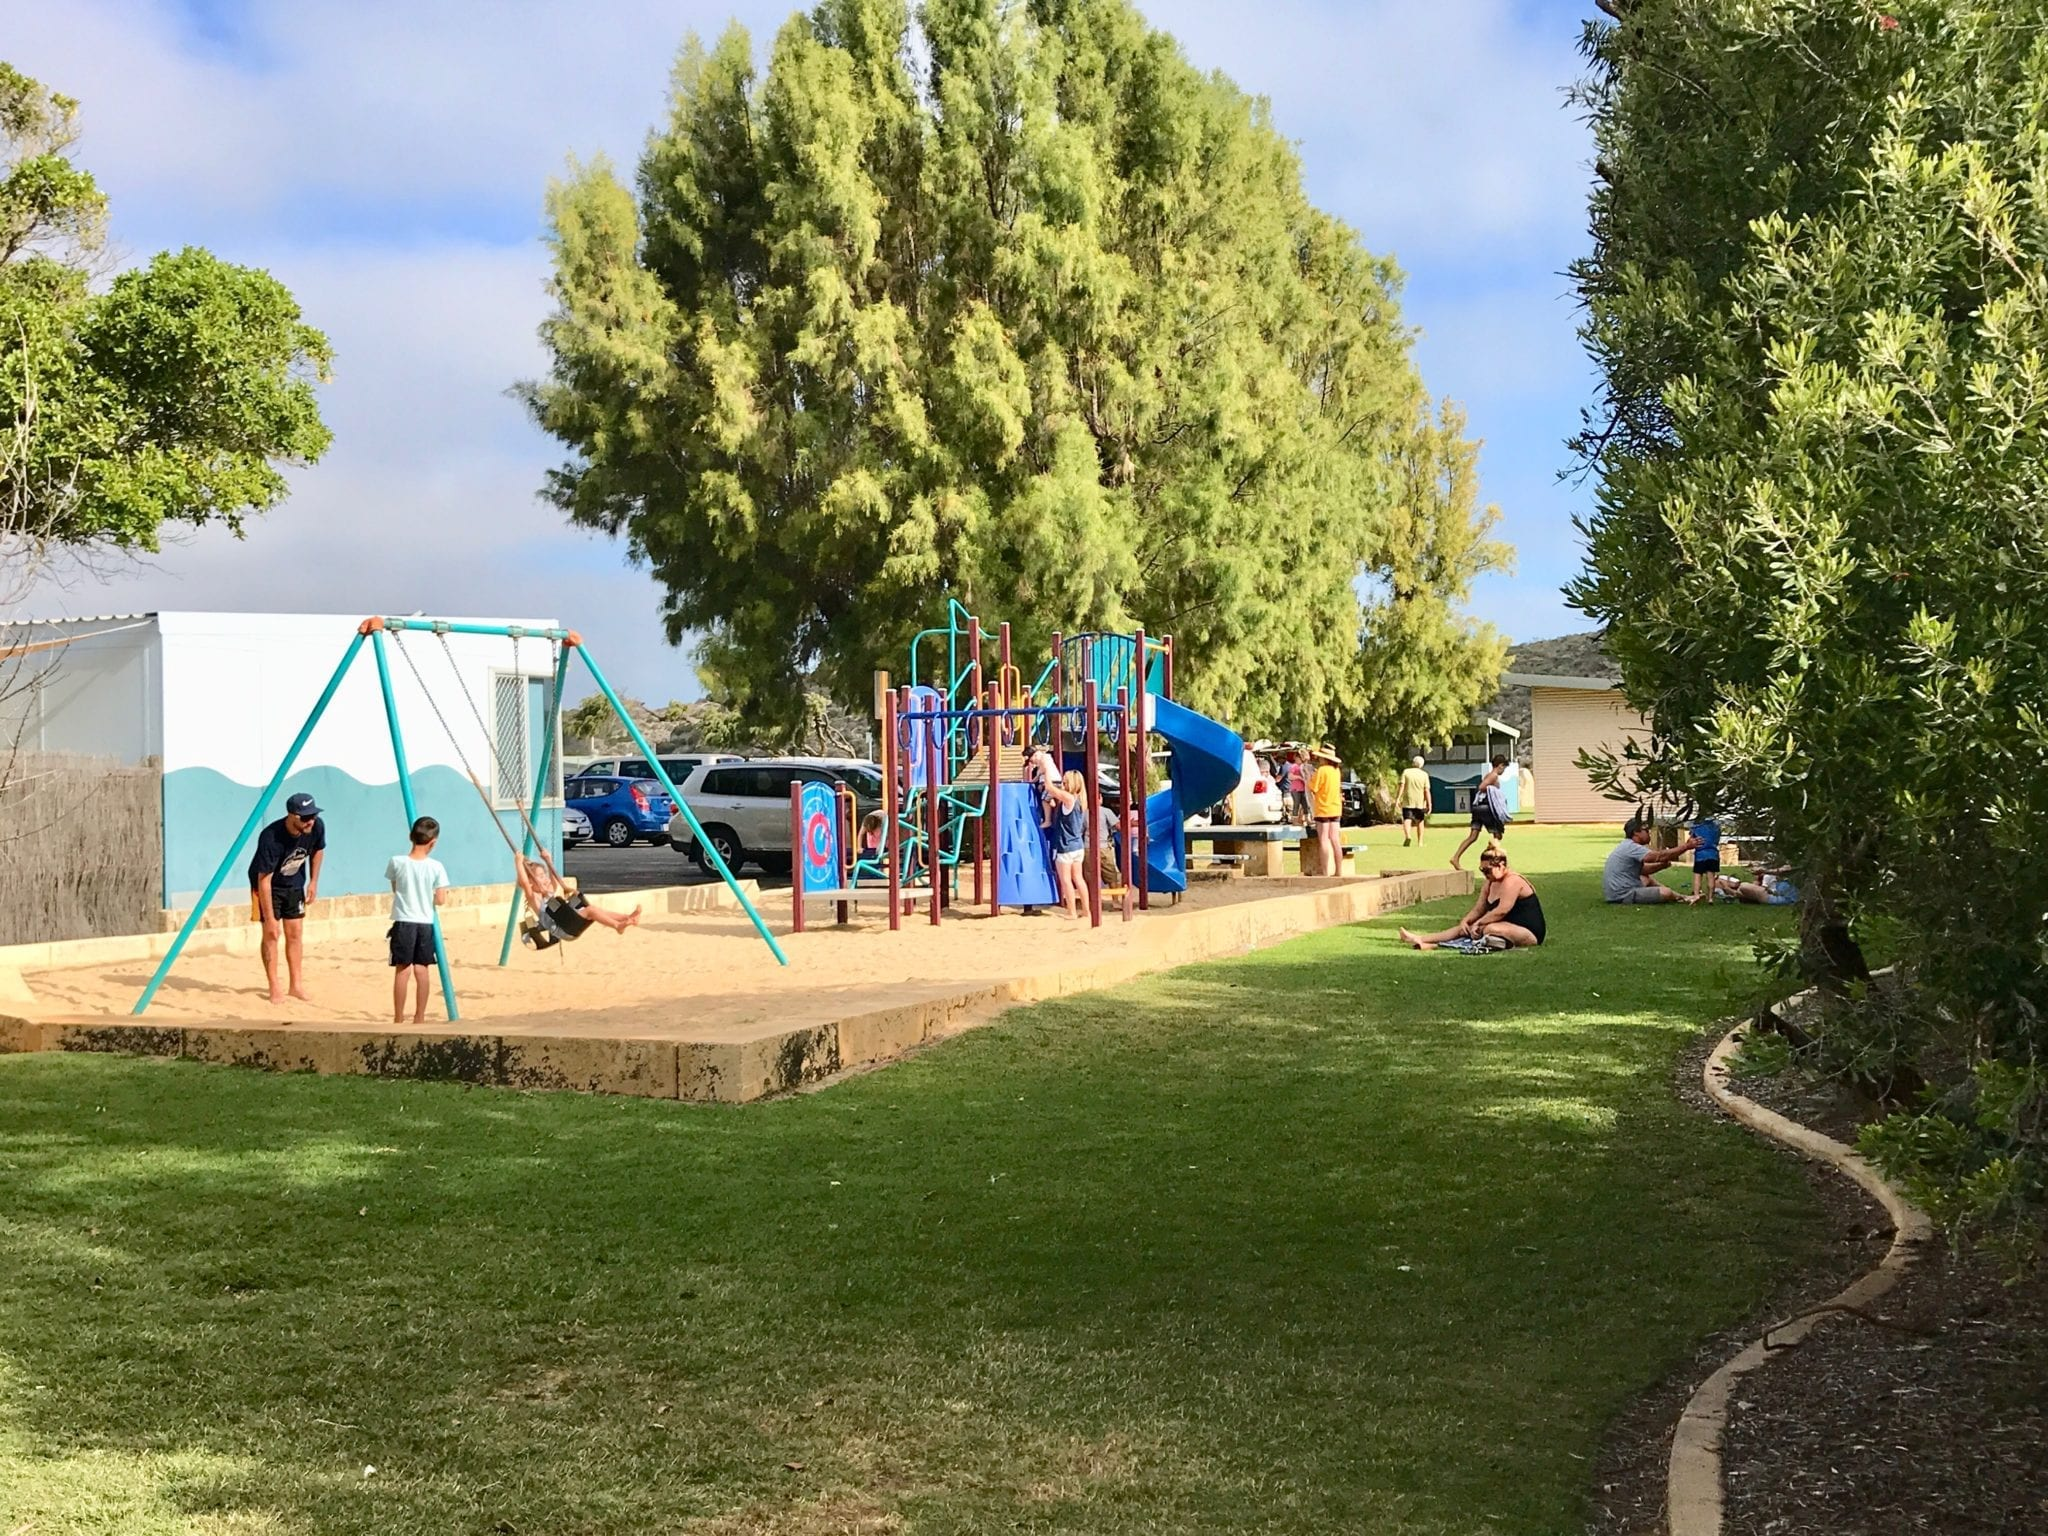 GUIDERTON CARAVAN PARK_7111